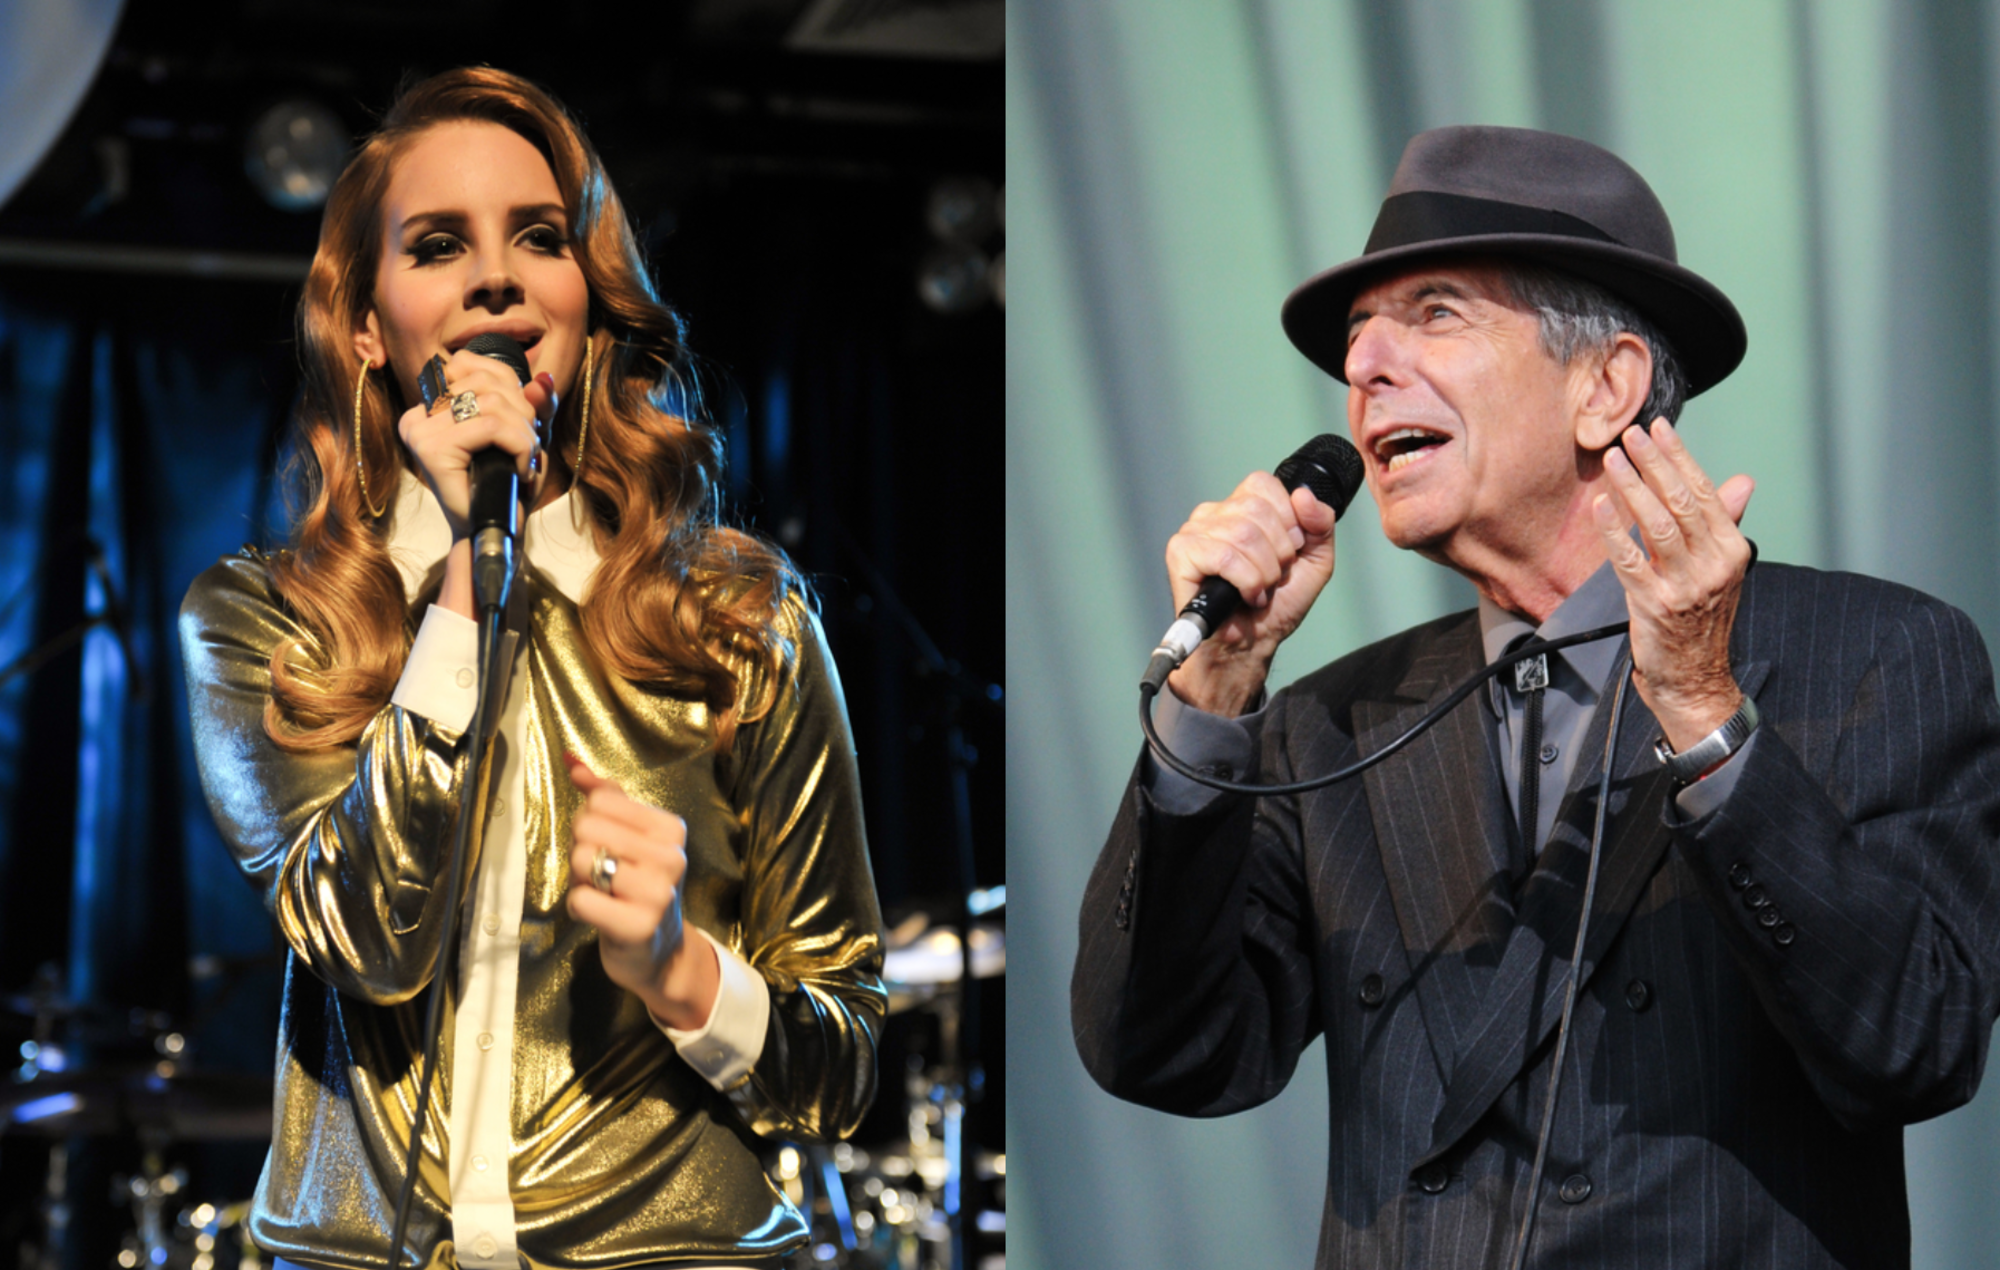 Watch Lana Del Rey perform Leonard Cohen's 'Chelsea Hotel #2' on first night of 'NFR' tour